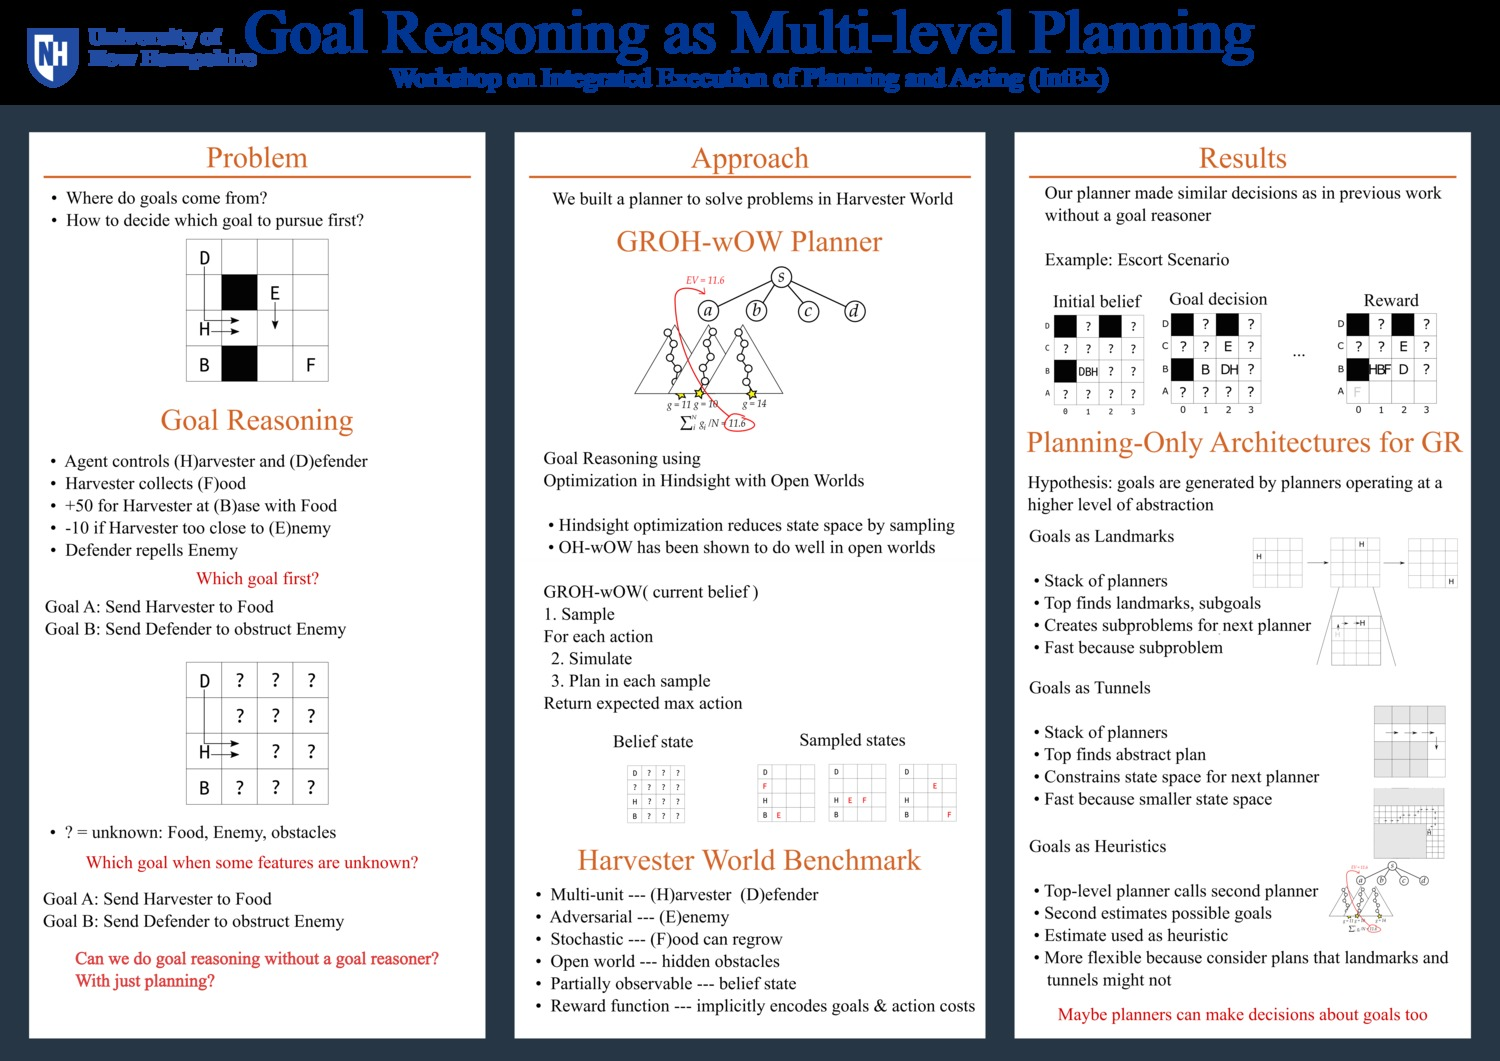 Goal Reasoning As Multi-Level Planning by ruml